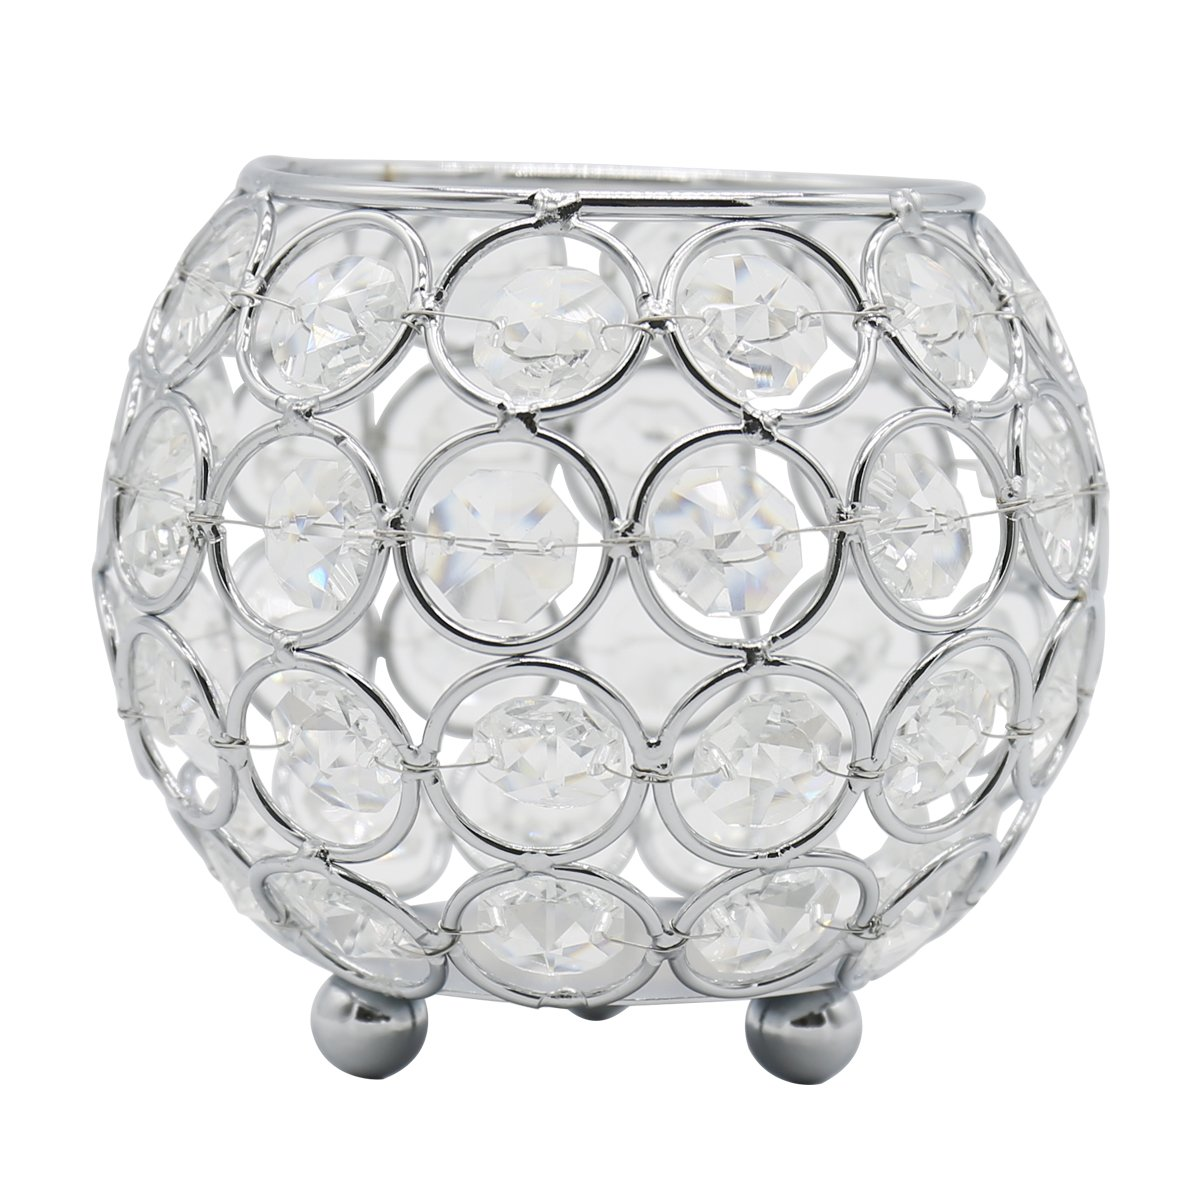 Joynest Crystal Tea Light Candle Lantern Holders, Wedding Coffee Table Decorative Centerpieces for Home Décor Party Mothers Day Birthday House Gifts (4'', Gold)